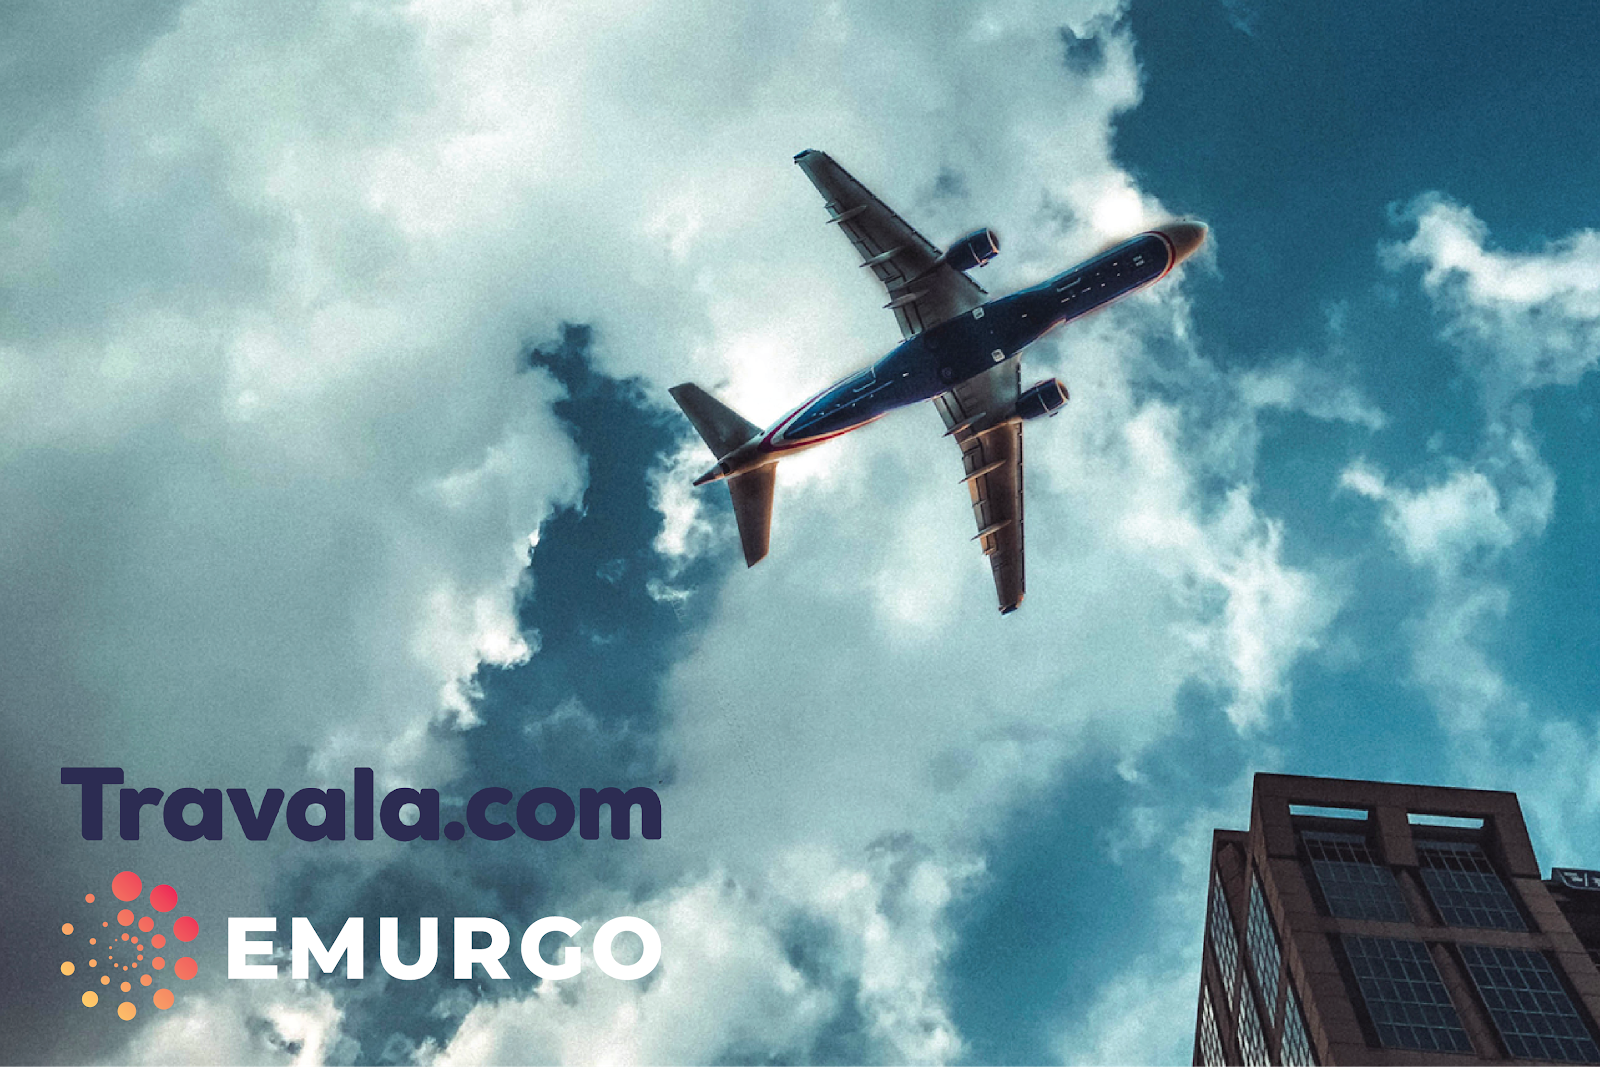 EMURGO Partners with Online Travel Agency Travala.com to Drive the Adoption of Cardano's ADA